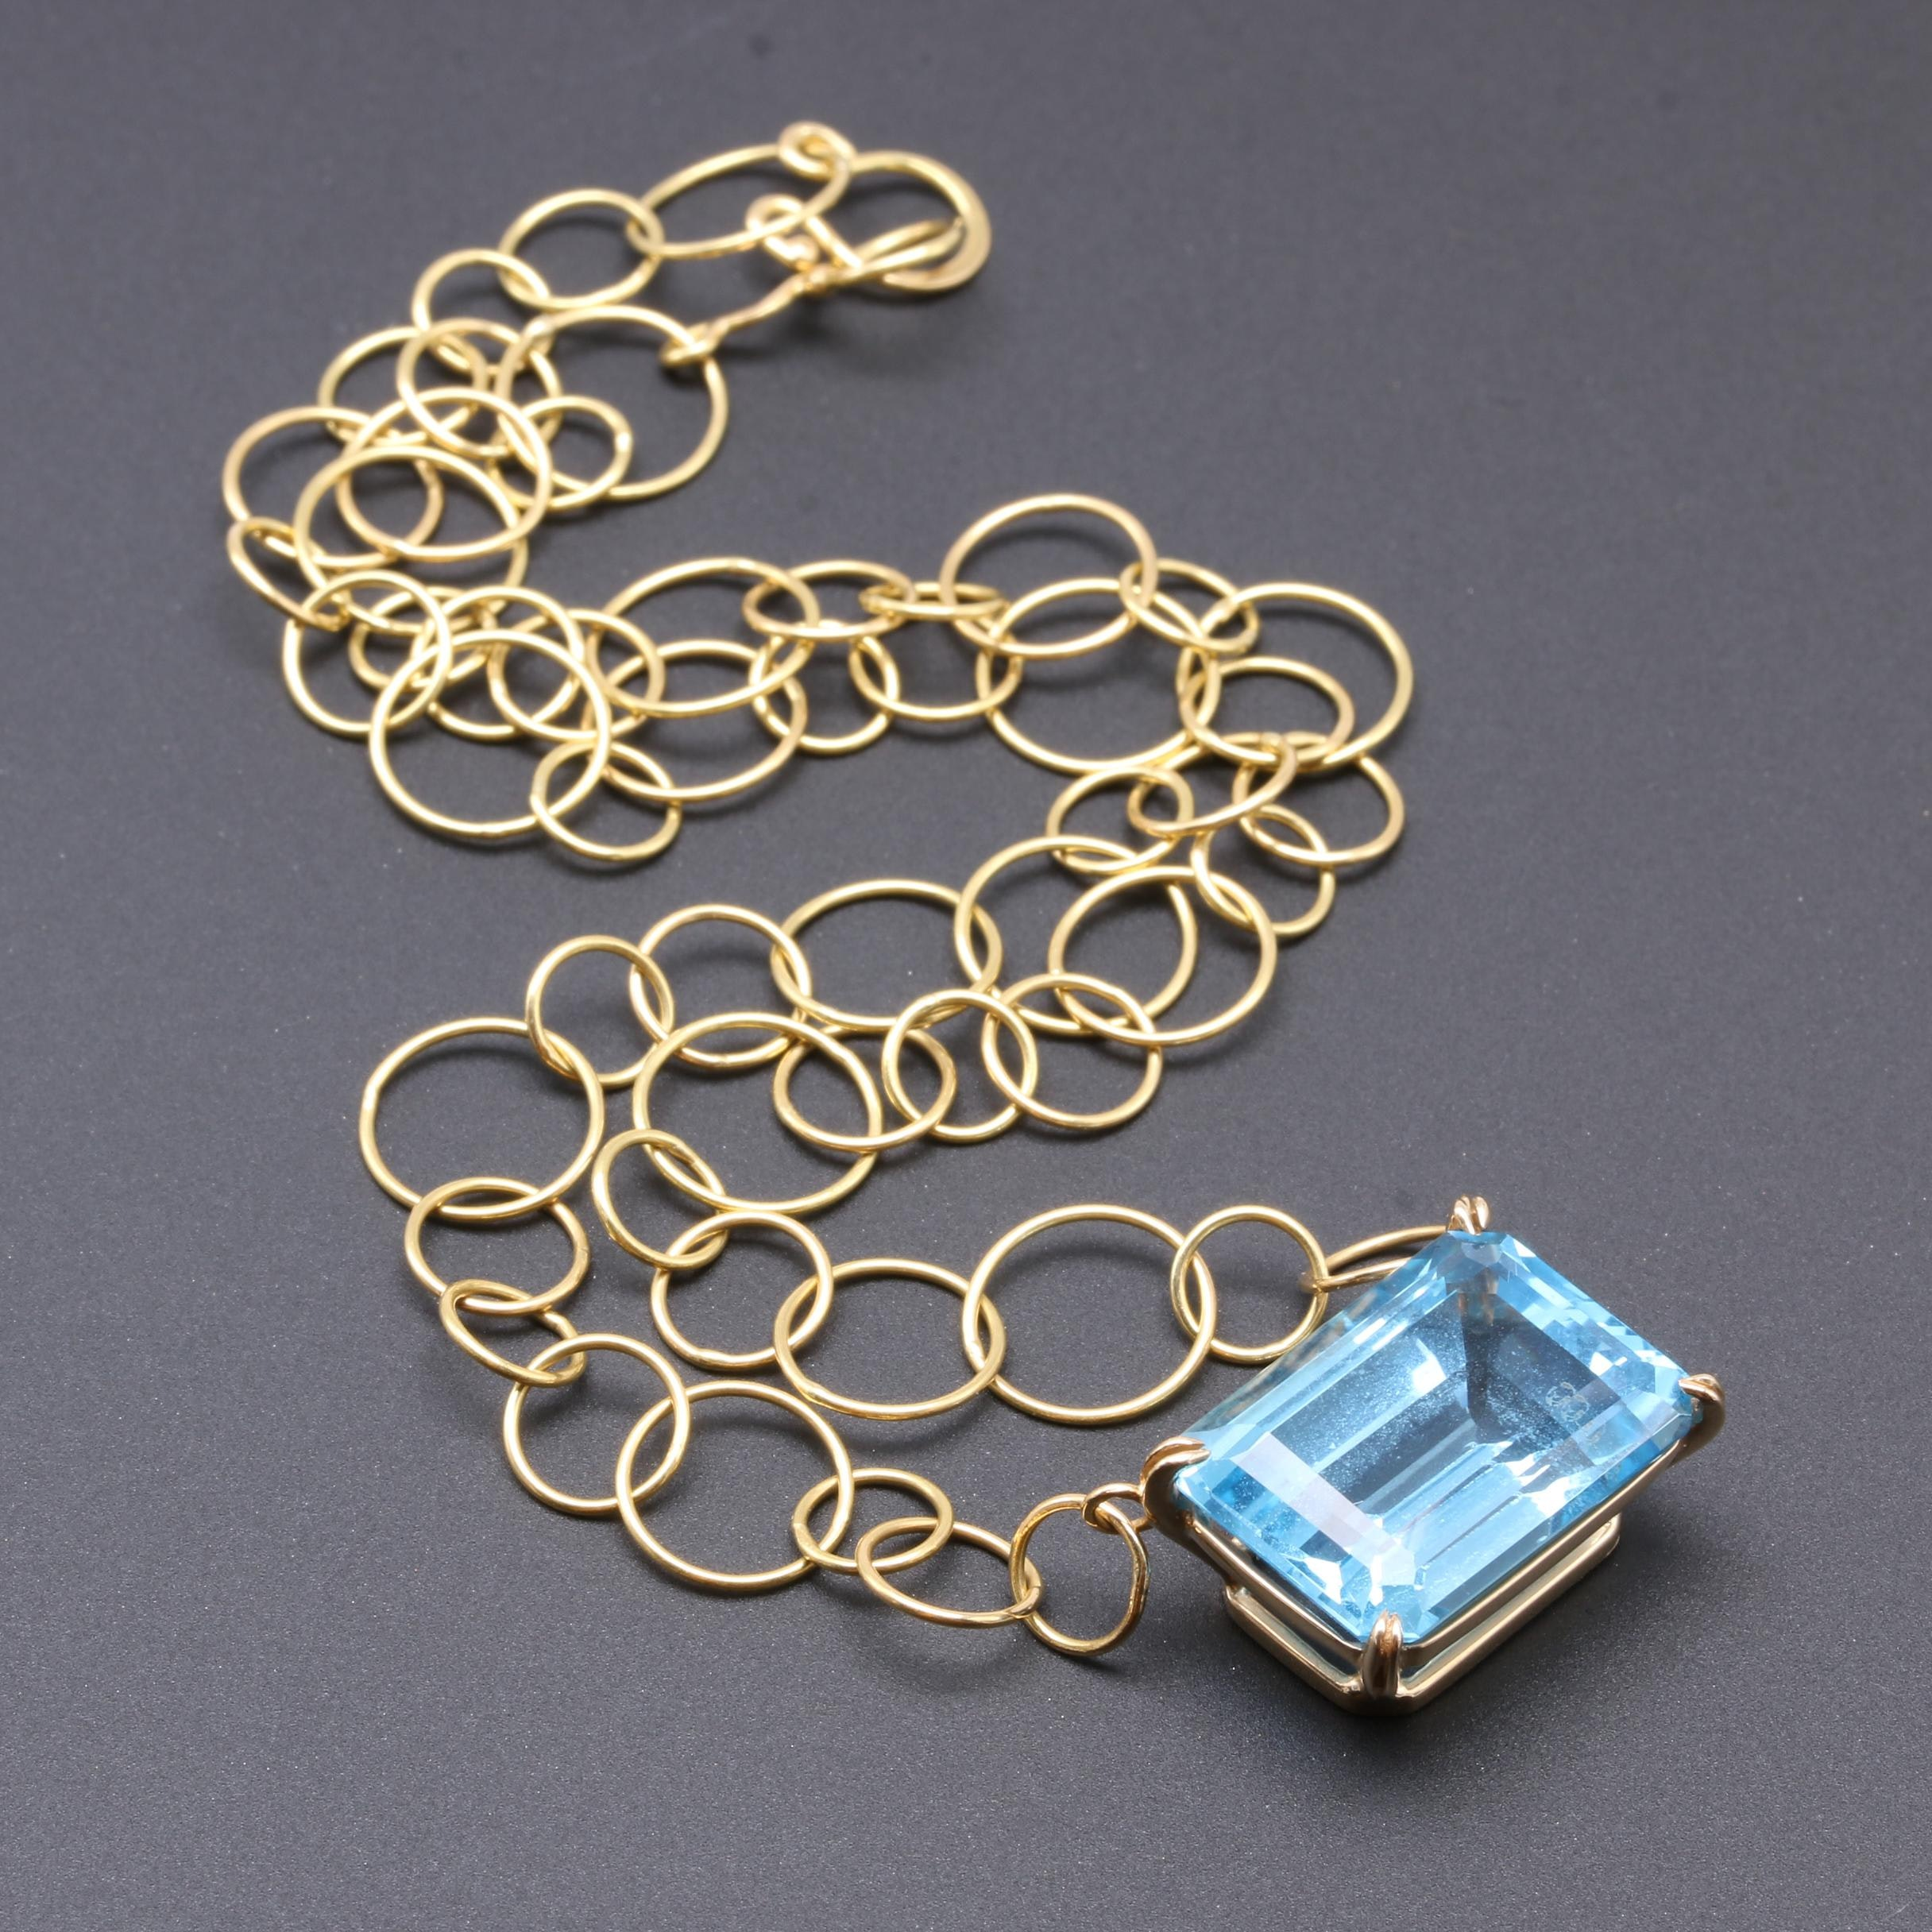 14K and 18K Yellow Gold 19.44 CT Blue Topaz Pendant Necklace